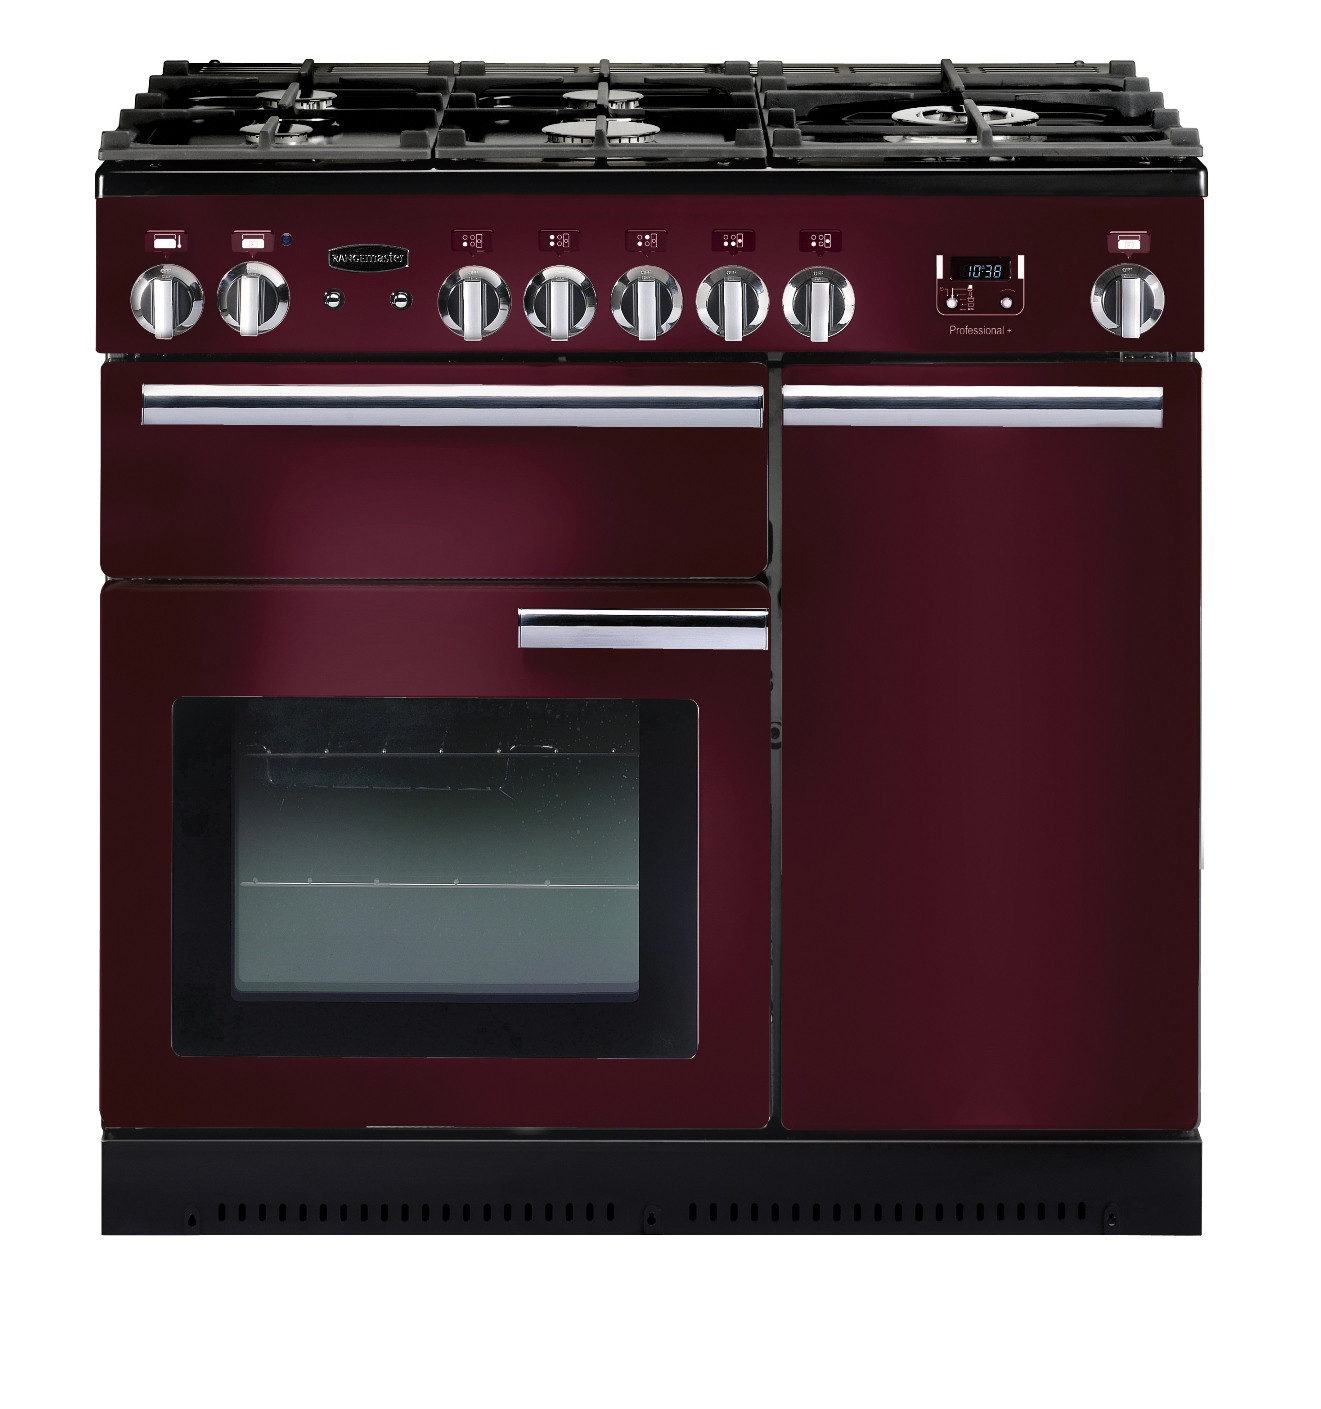 Rangemaster Professional Plus 90 Natural Gas Cranberry Range Cooker PROP90NGFCY/C 91940